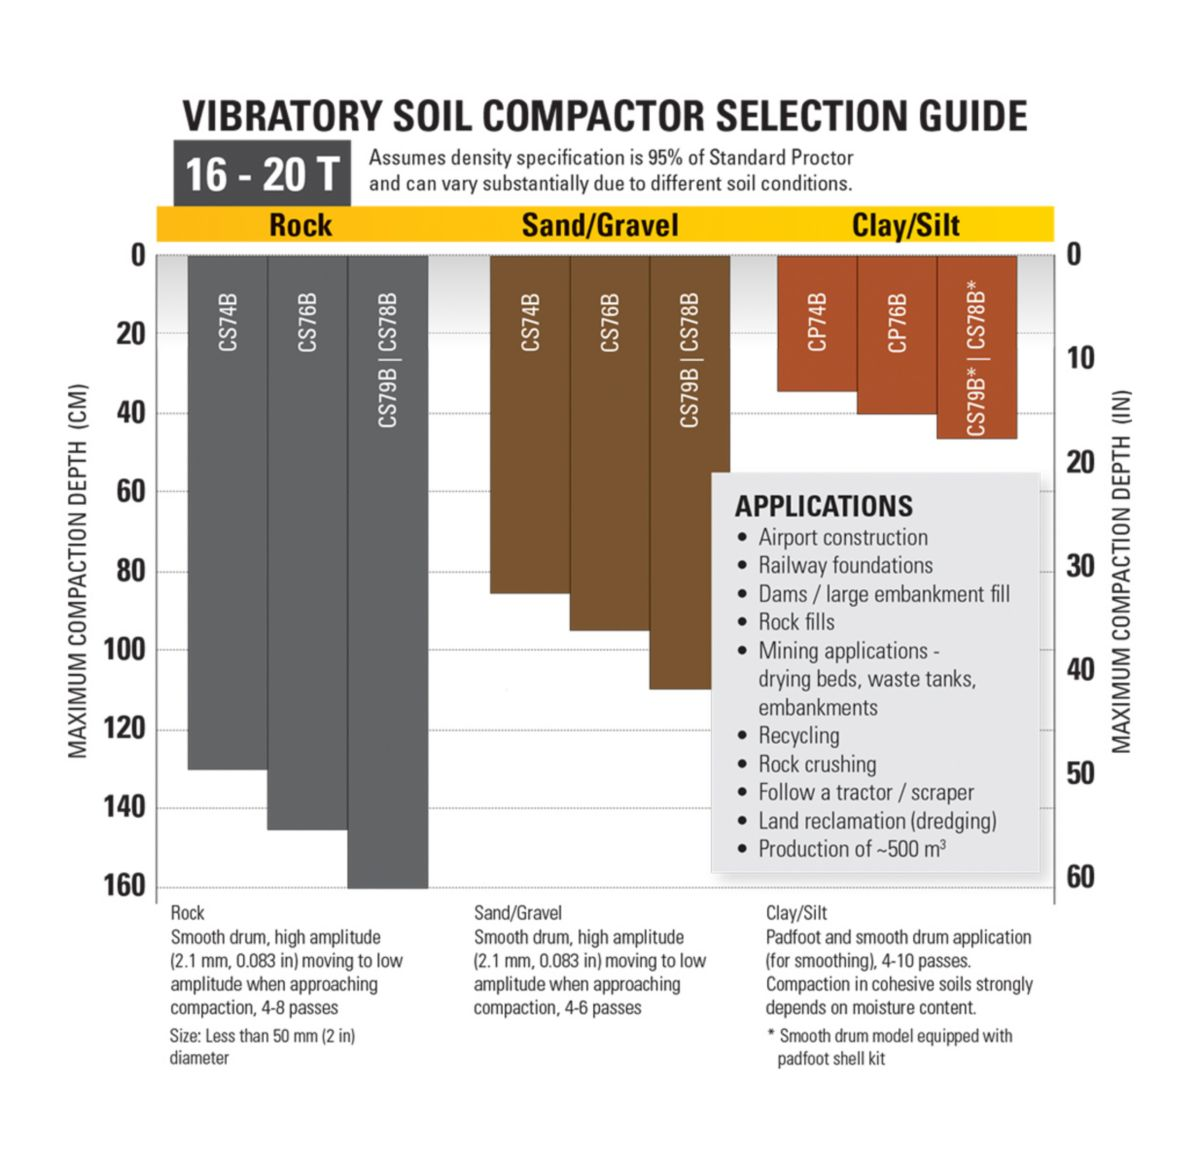 16-20T Vibratory Soil Compactor Selection Guide>